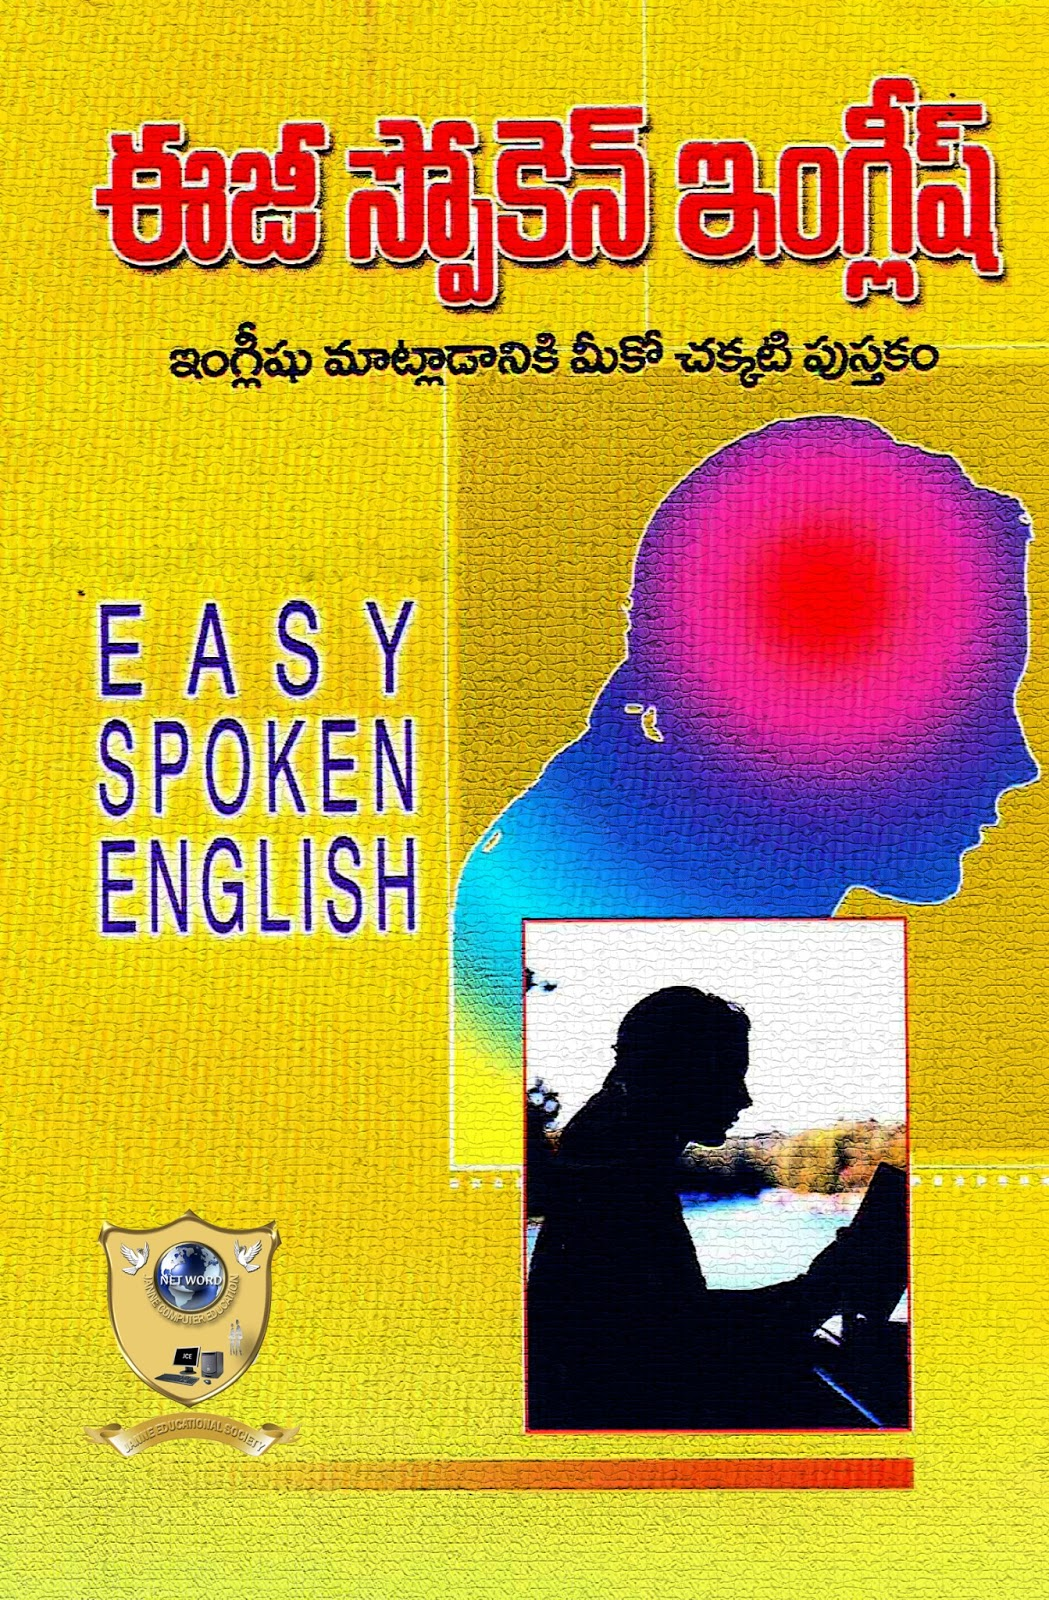 English malayalam spoken english pdf free download